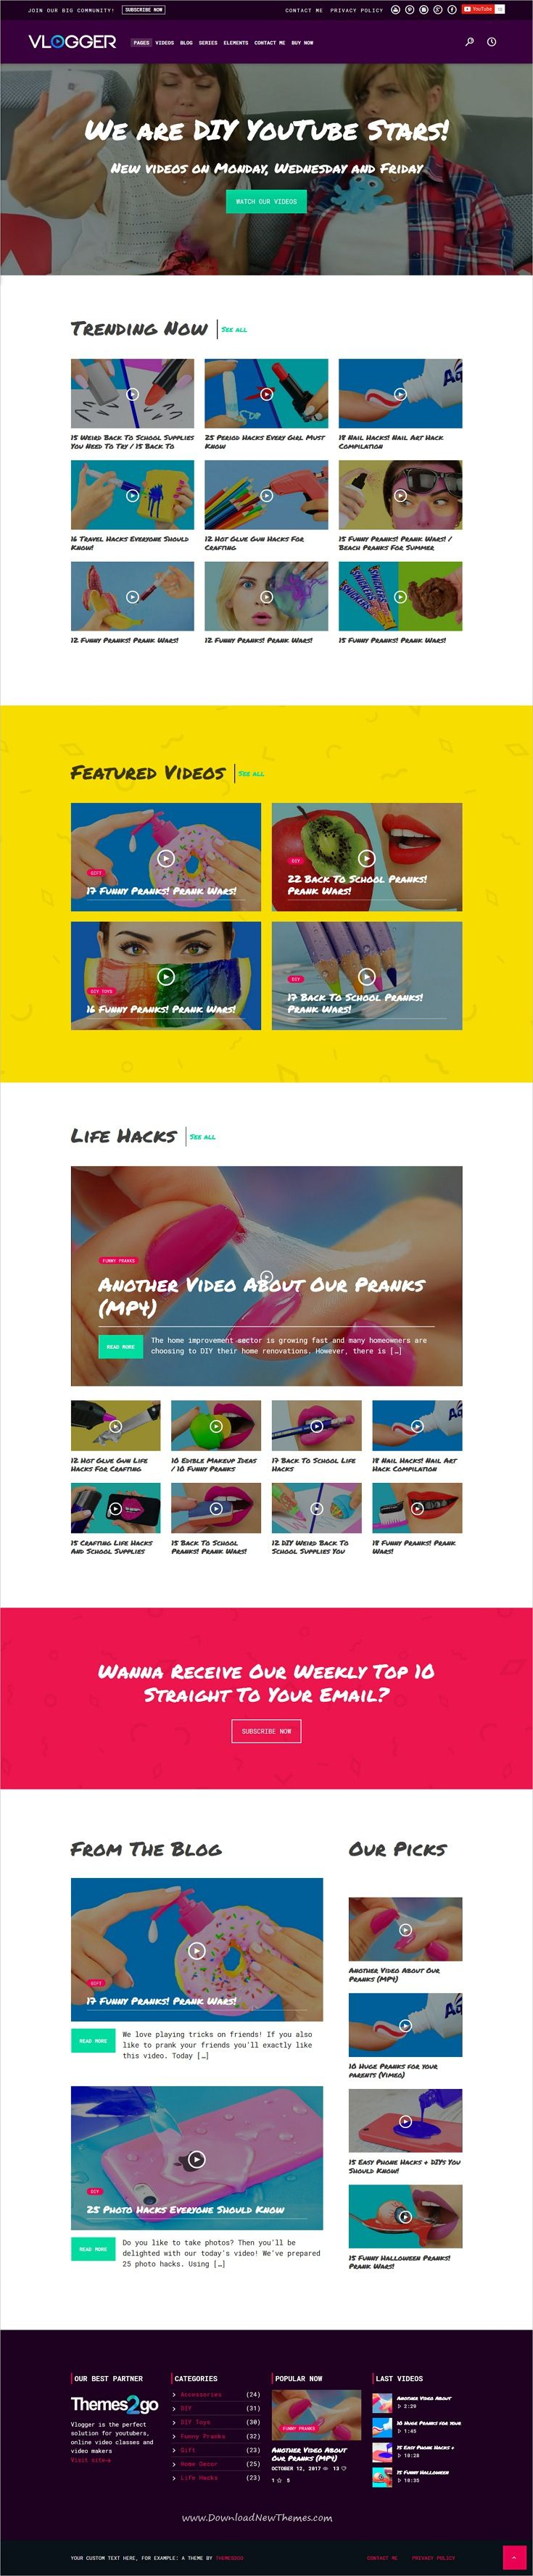 Vlogger is clean and modern design 4in1 responsive #WordPress theme for professional #DIY #videos , tutorials, online courses and video blogs website download now..